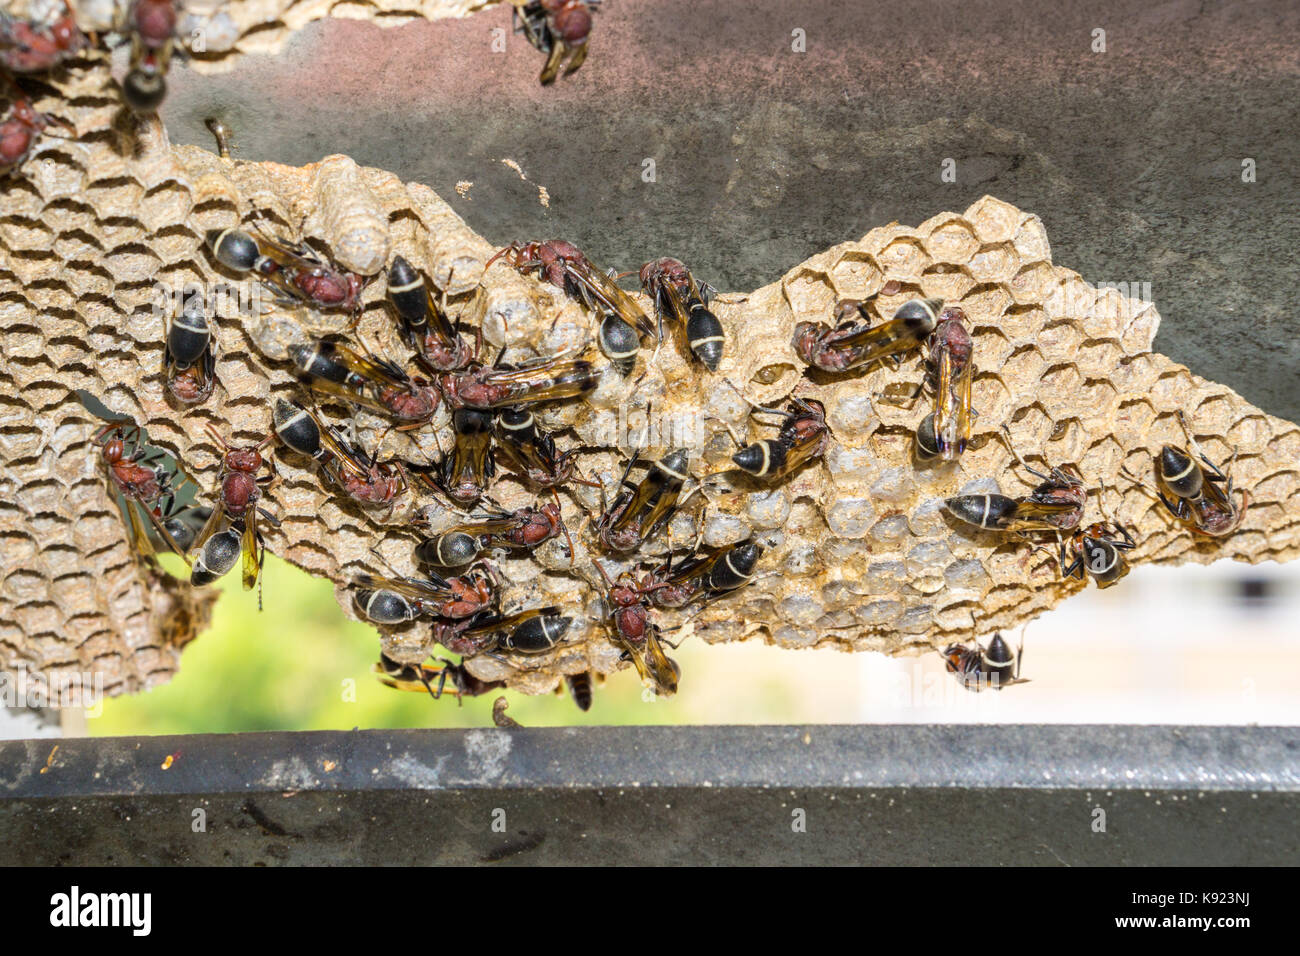 Wasp nest with wasps sitting on it. Wasps polist. - Stock Image